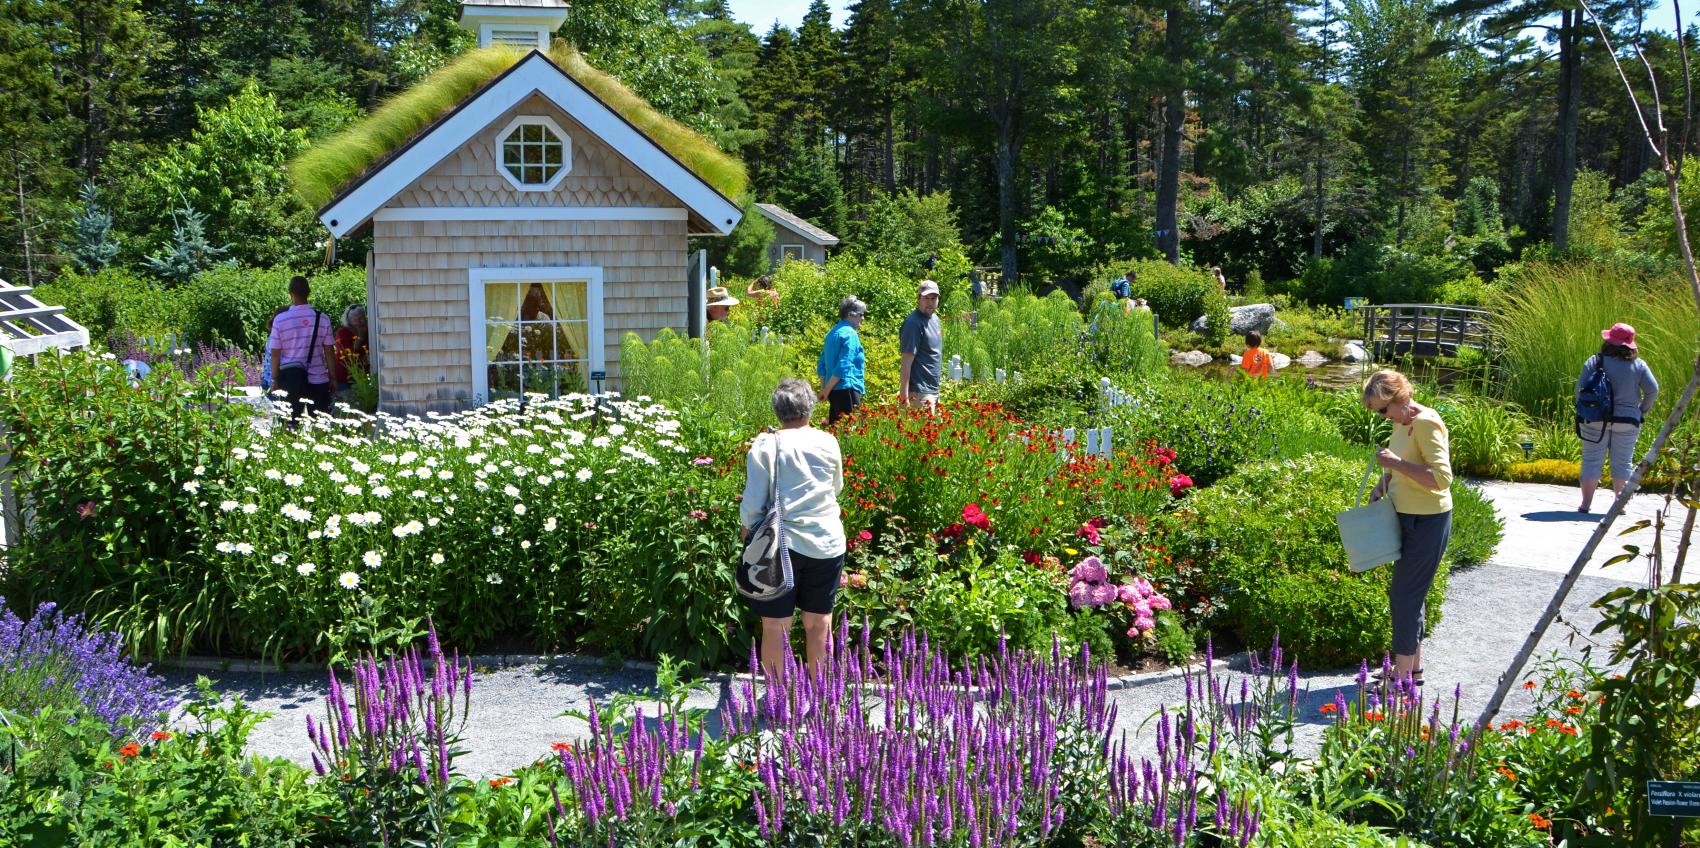 Coastal Maine Botanical Gardens, Located On Nearly 300 Acres Of Coastal  Waterfront, Is The Largest Botanical Garden In New England And One Of The  Nationu0027s ...